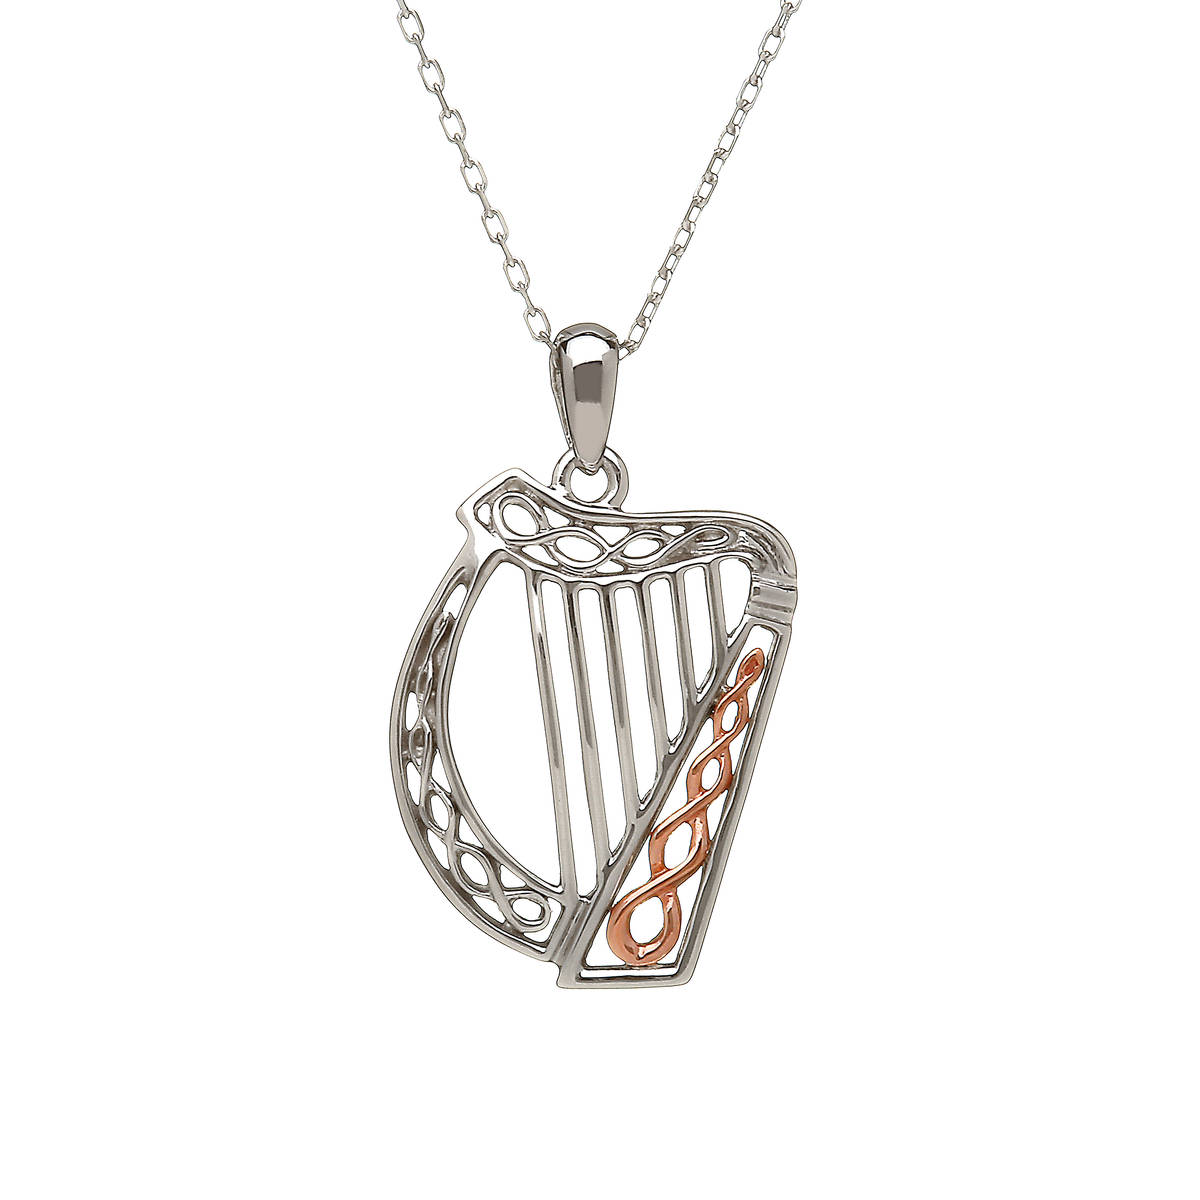 sterling silver and rare Irish rose gold Celtic Harp pendant with Celtic design in gold.